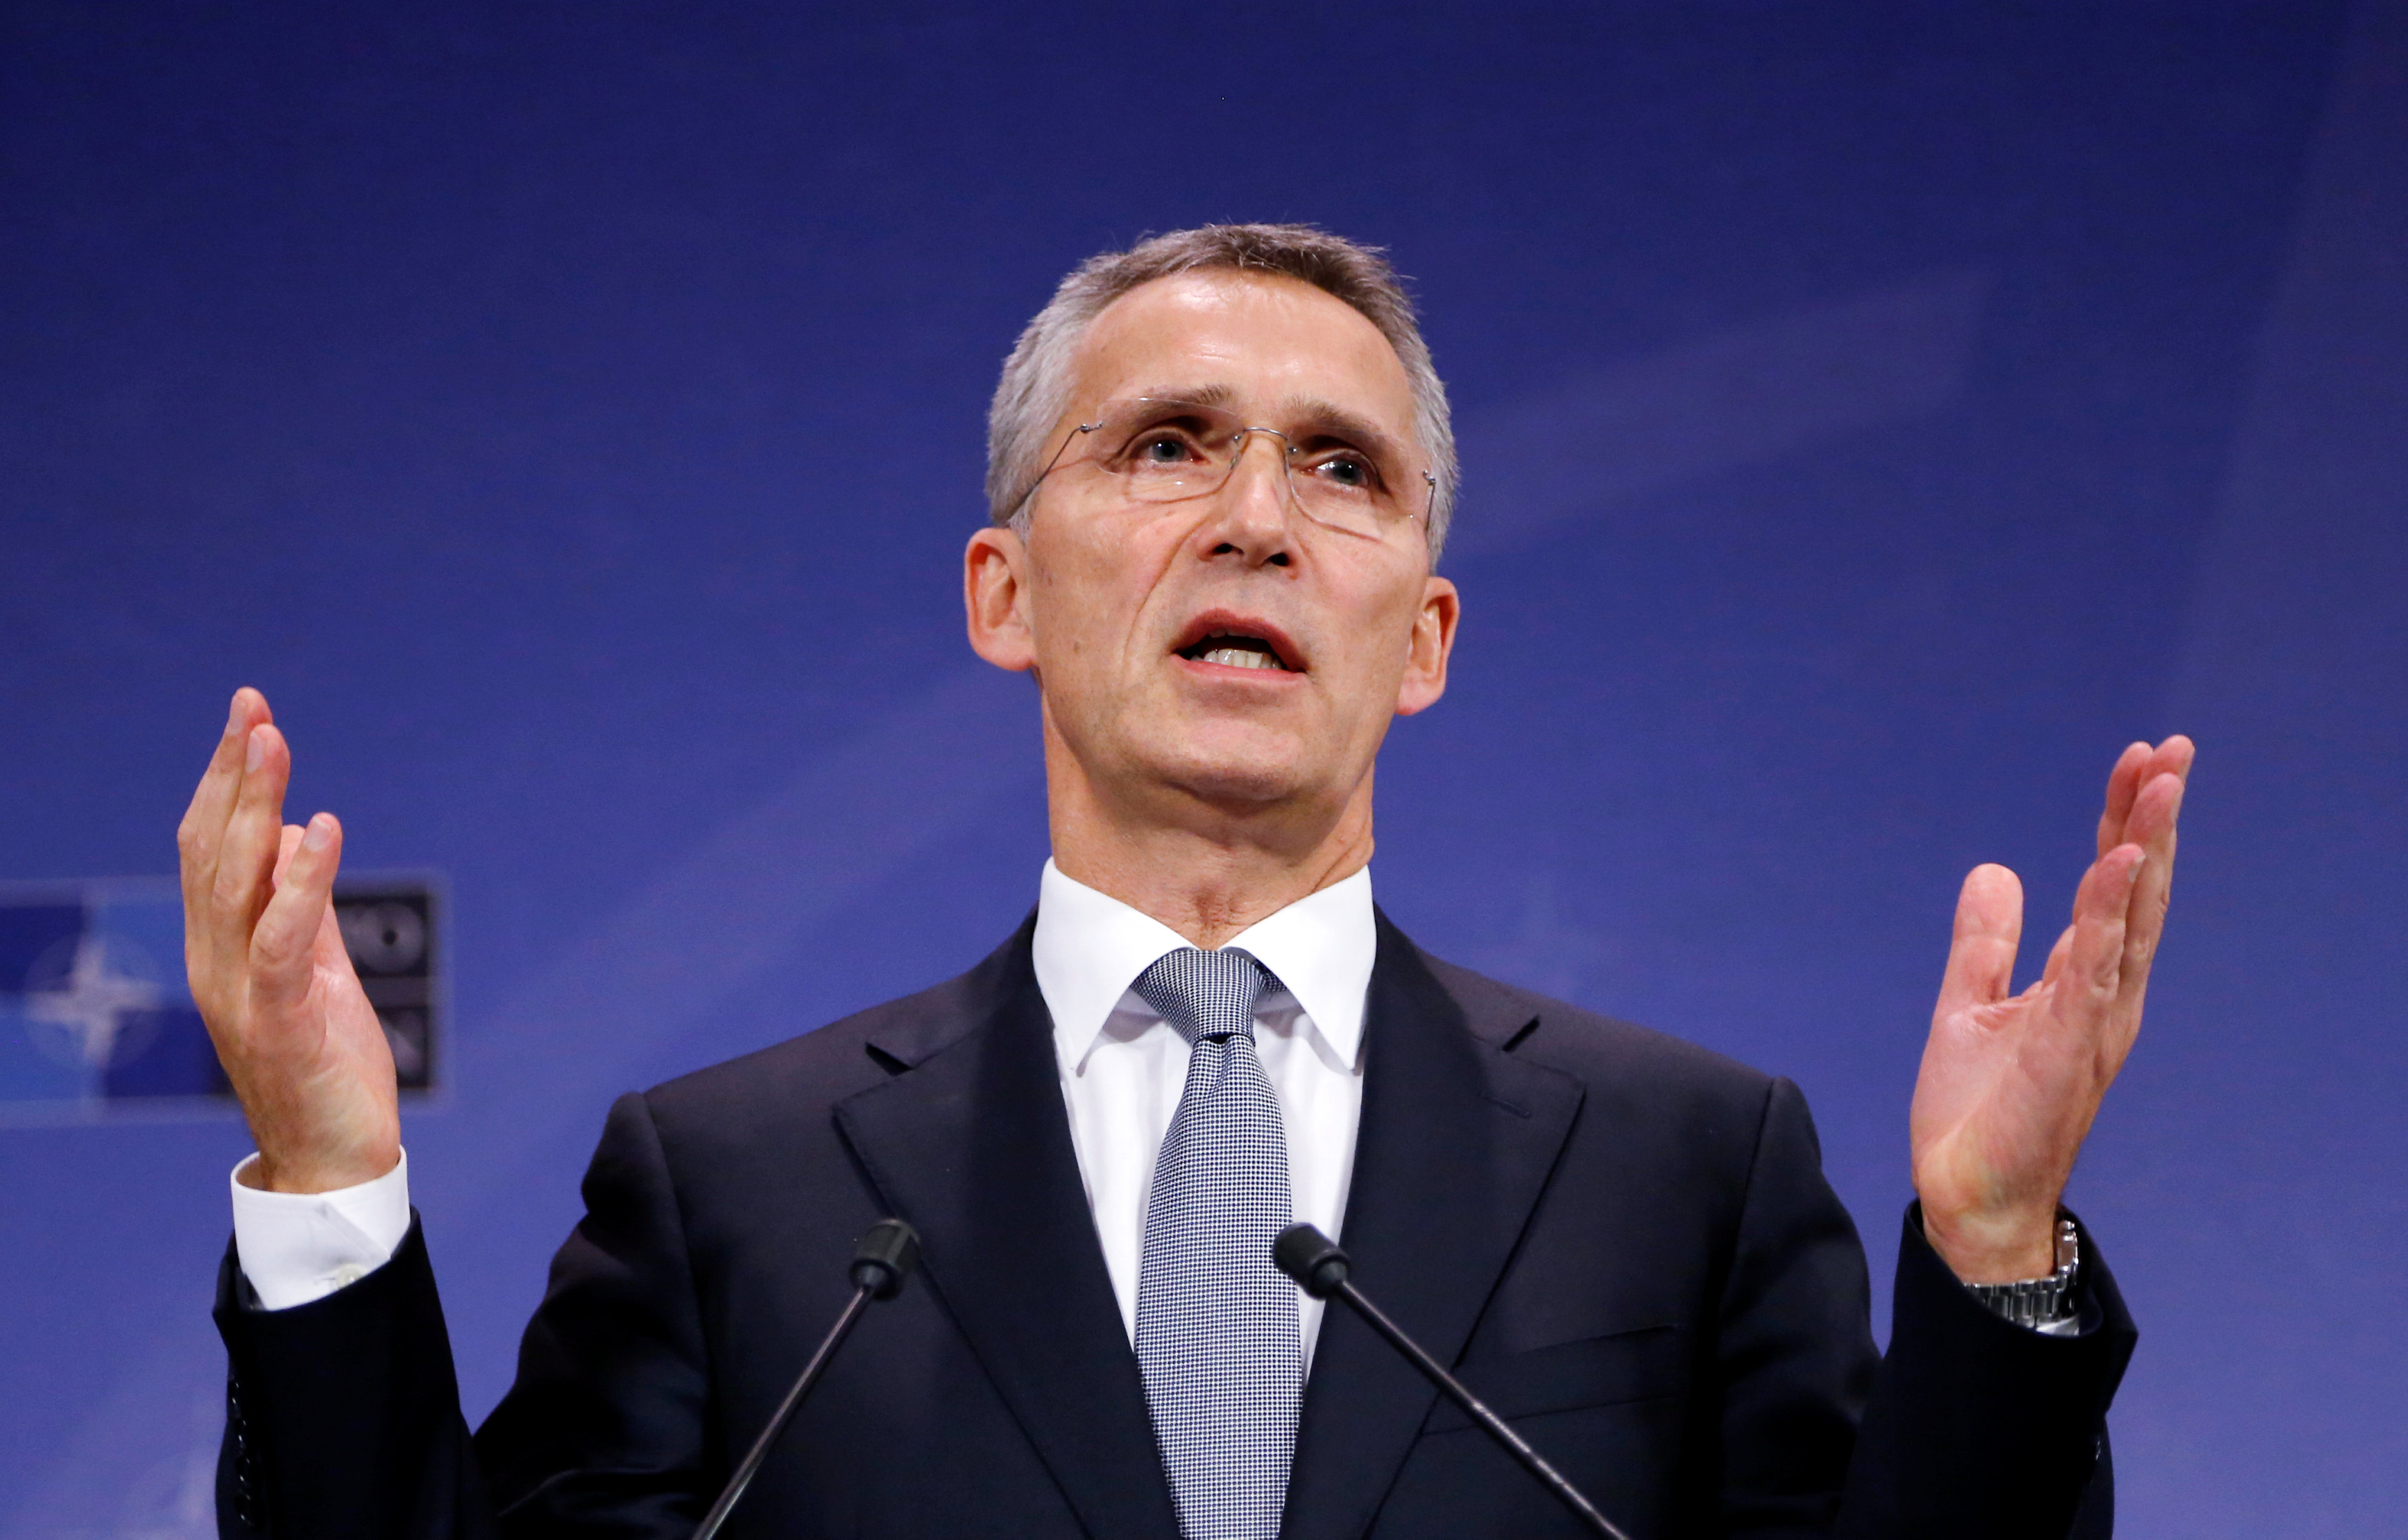 NATO Secretary-General Jens Stoltenberg addresses a news conference during a NATO defence ministers meeting at the Alliance headquarters in Brussels, Belgium,